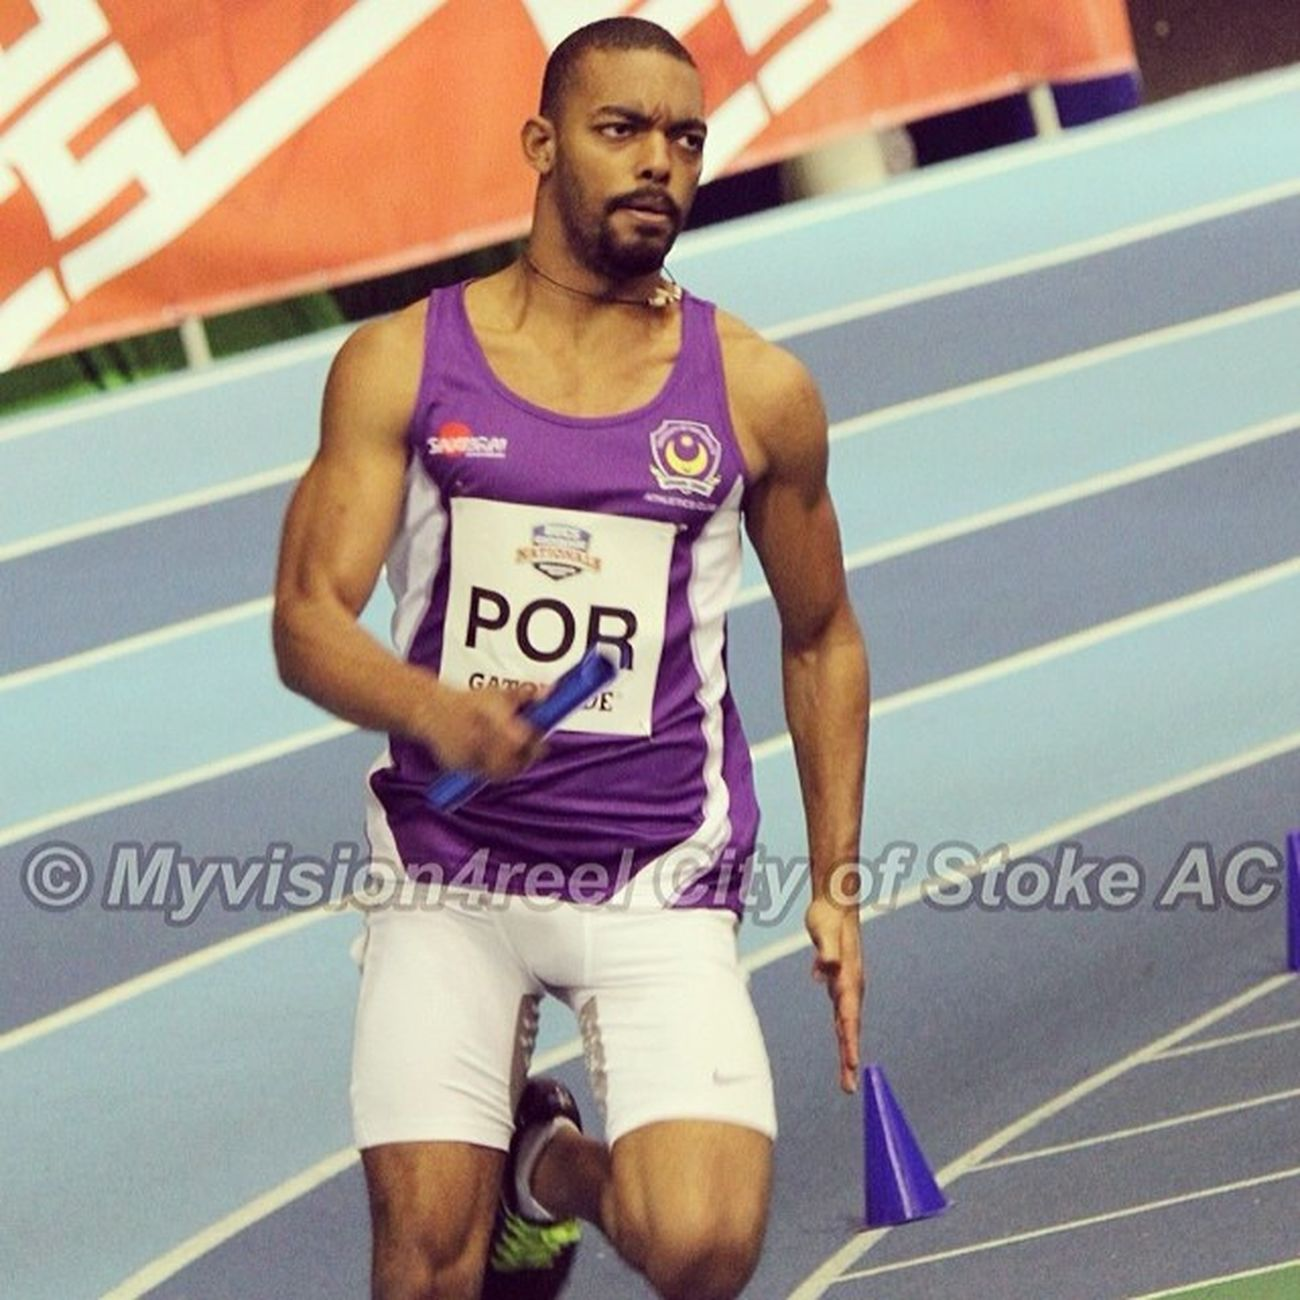 4x200m relay! Good solid aggressive run! Bucs Gatorade Indoor Athletics Sheffield 200m Relay EyeOfTheTiger SeriousBreathing UPAC UniversityOfPortsmouth POR BackInBusiness